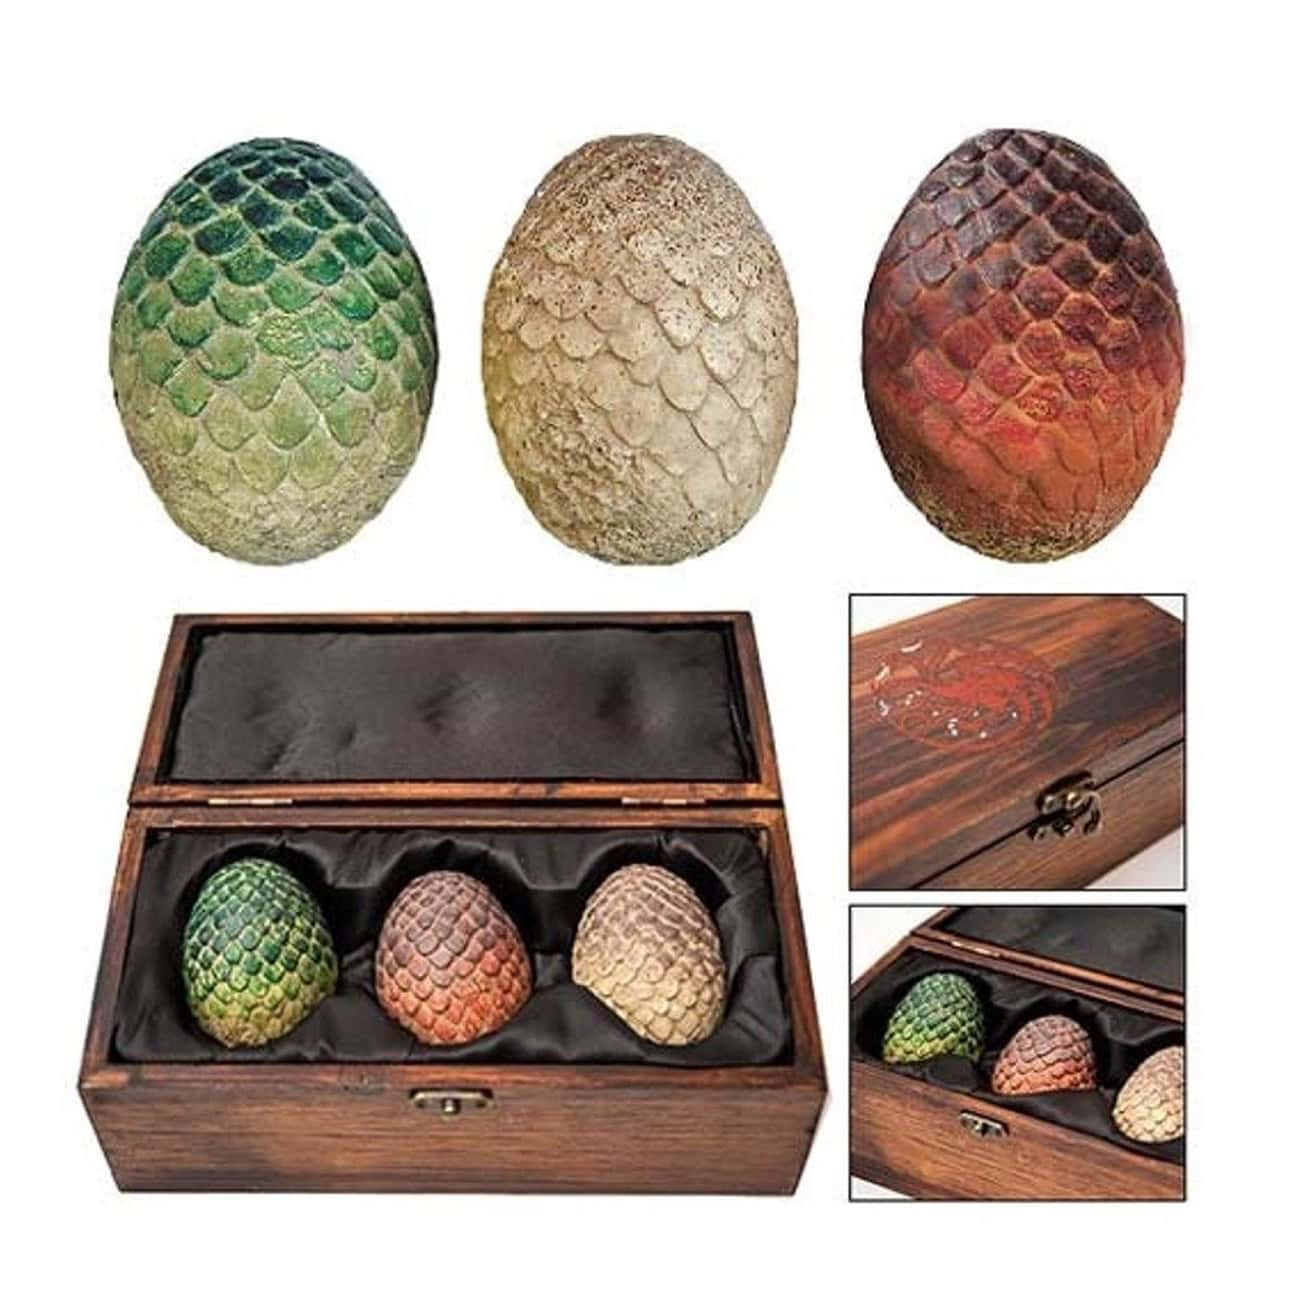 Dragon Egg Prop Replica Set is listed (or ranked) 2 on the list Game of Thrones Gifts for the Fan Who Has It All